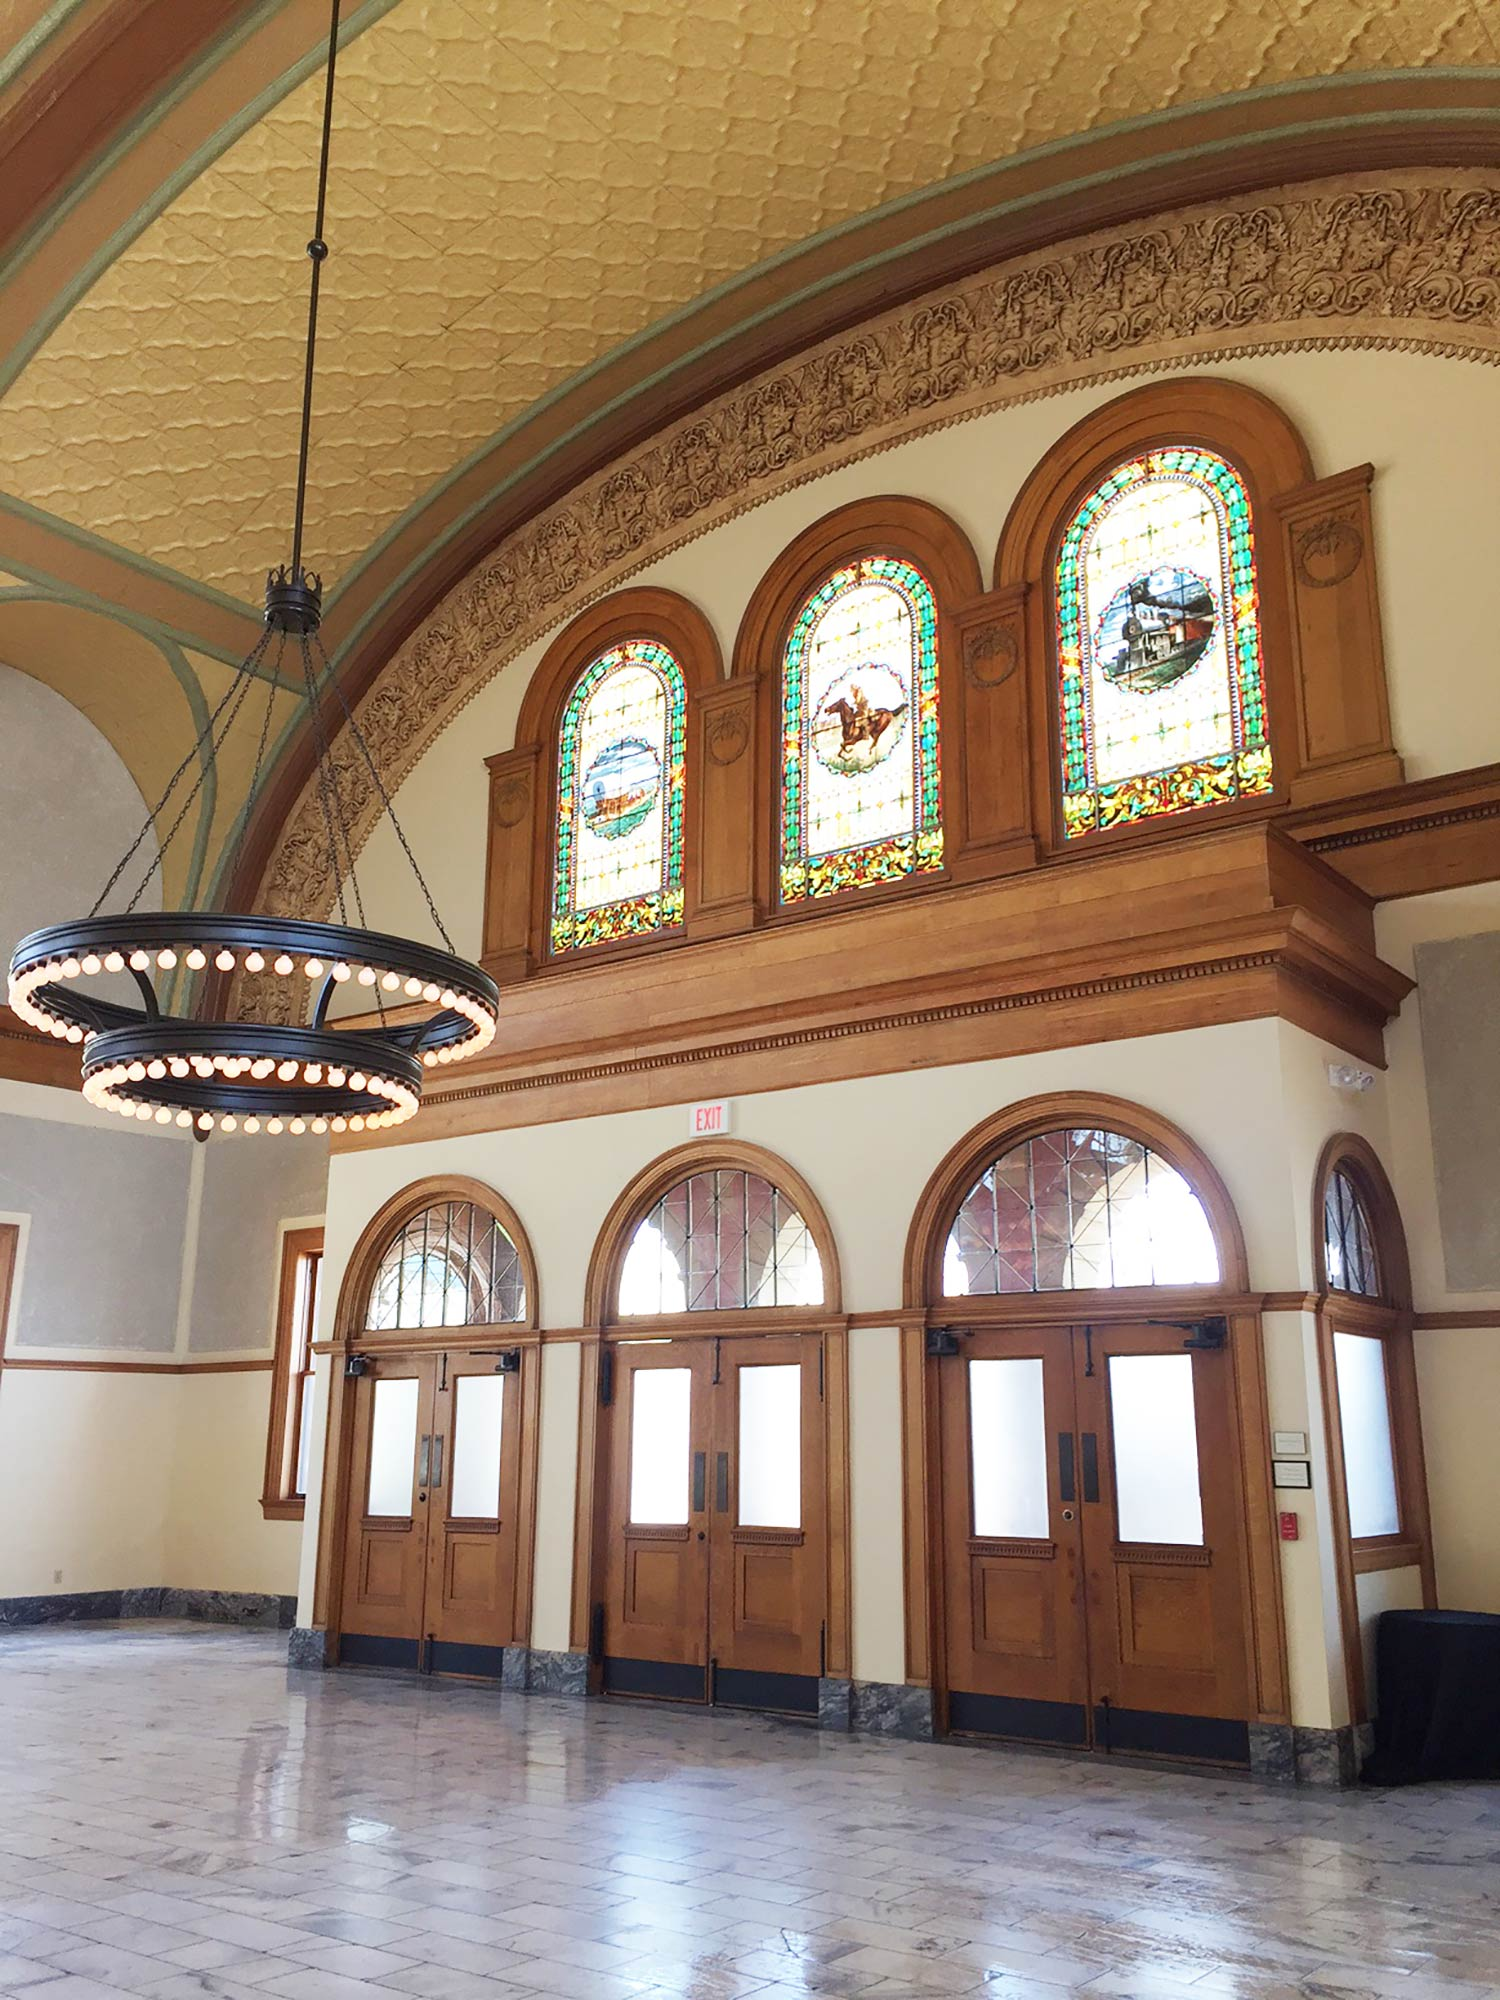 Fort worth wedding venue Ashton Depot stained glass windows